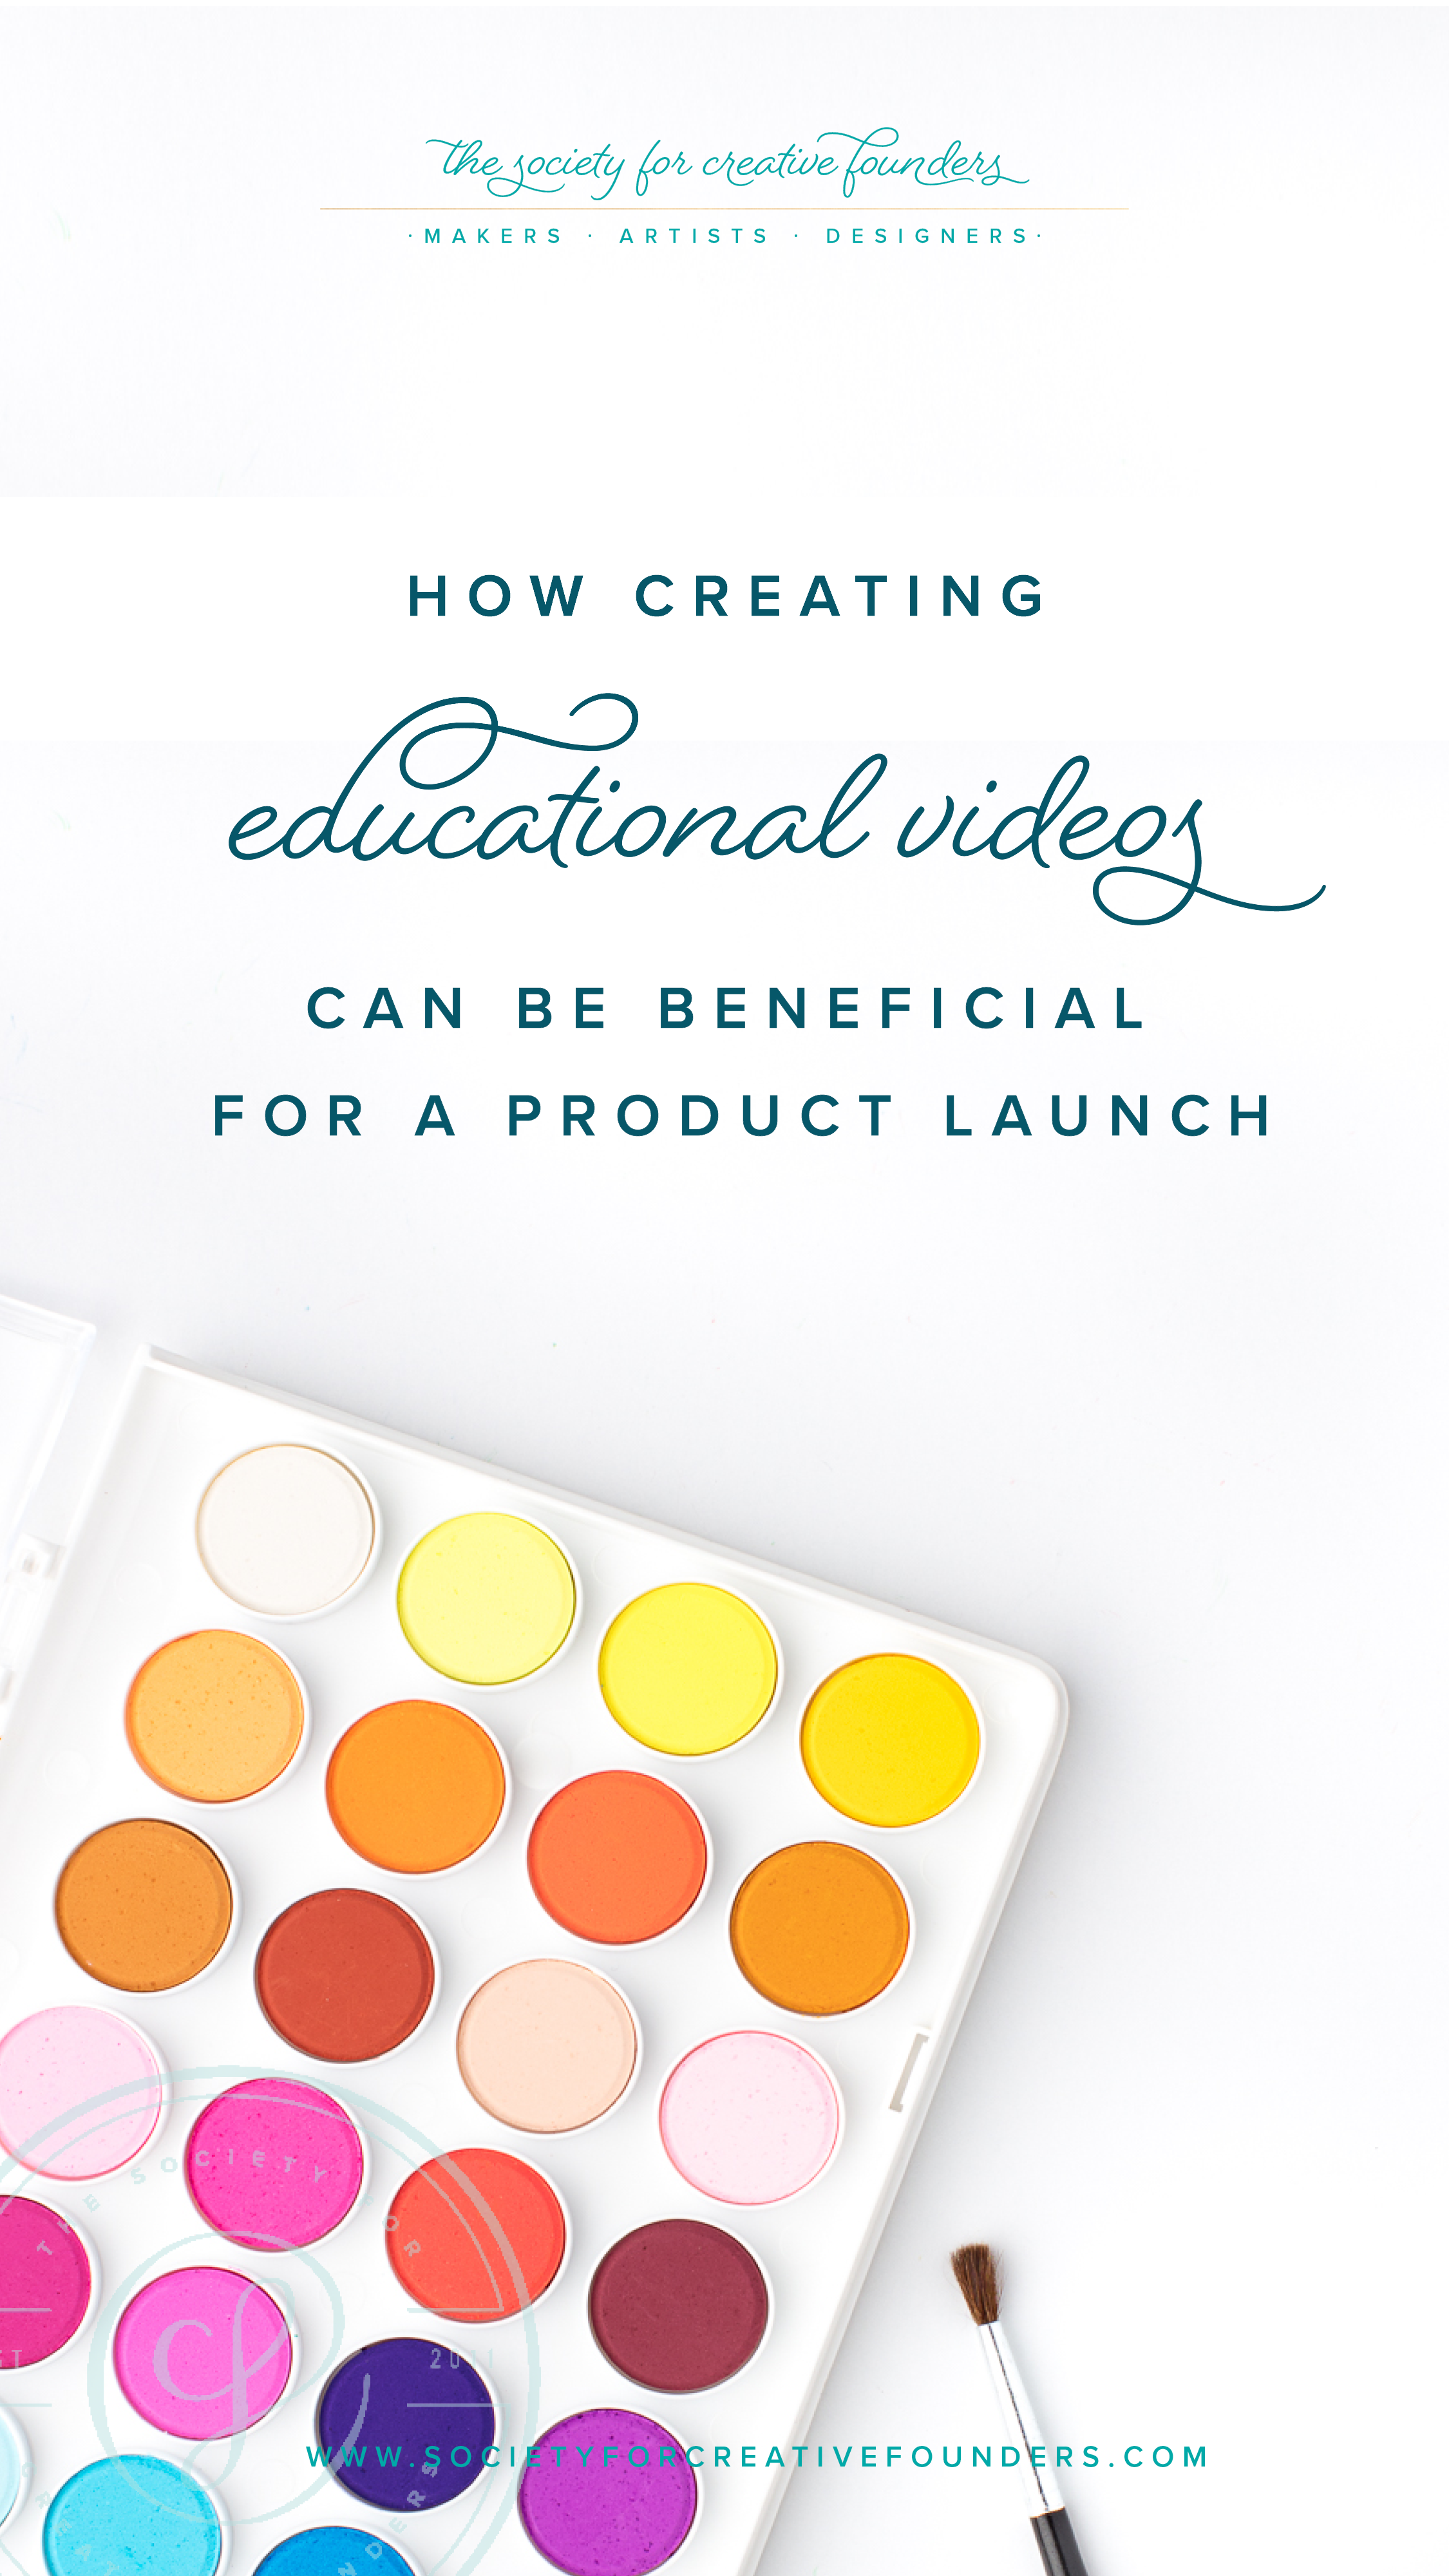 How Using Educational Videos can help with a product launch - guest post by Jessica Freeman